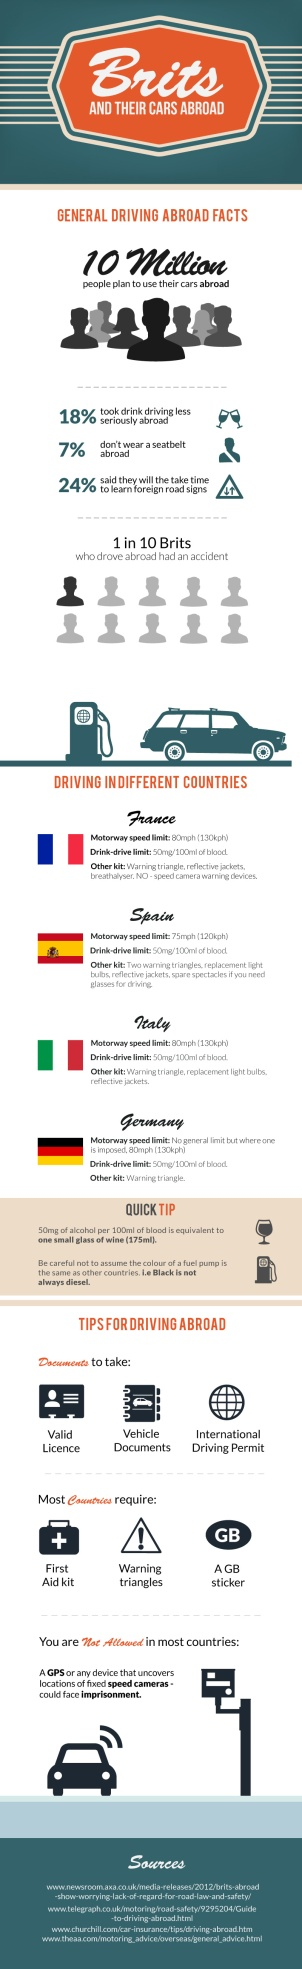 Brits And Their Cars Abroad